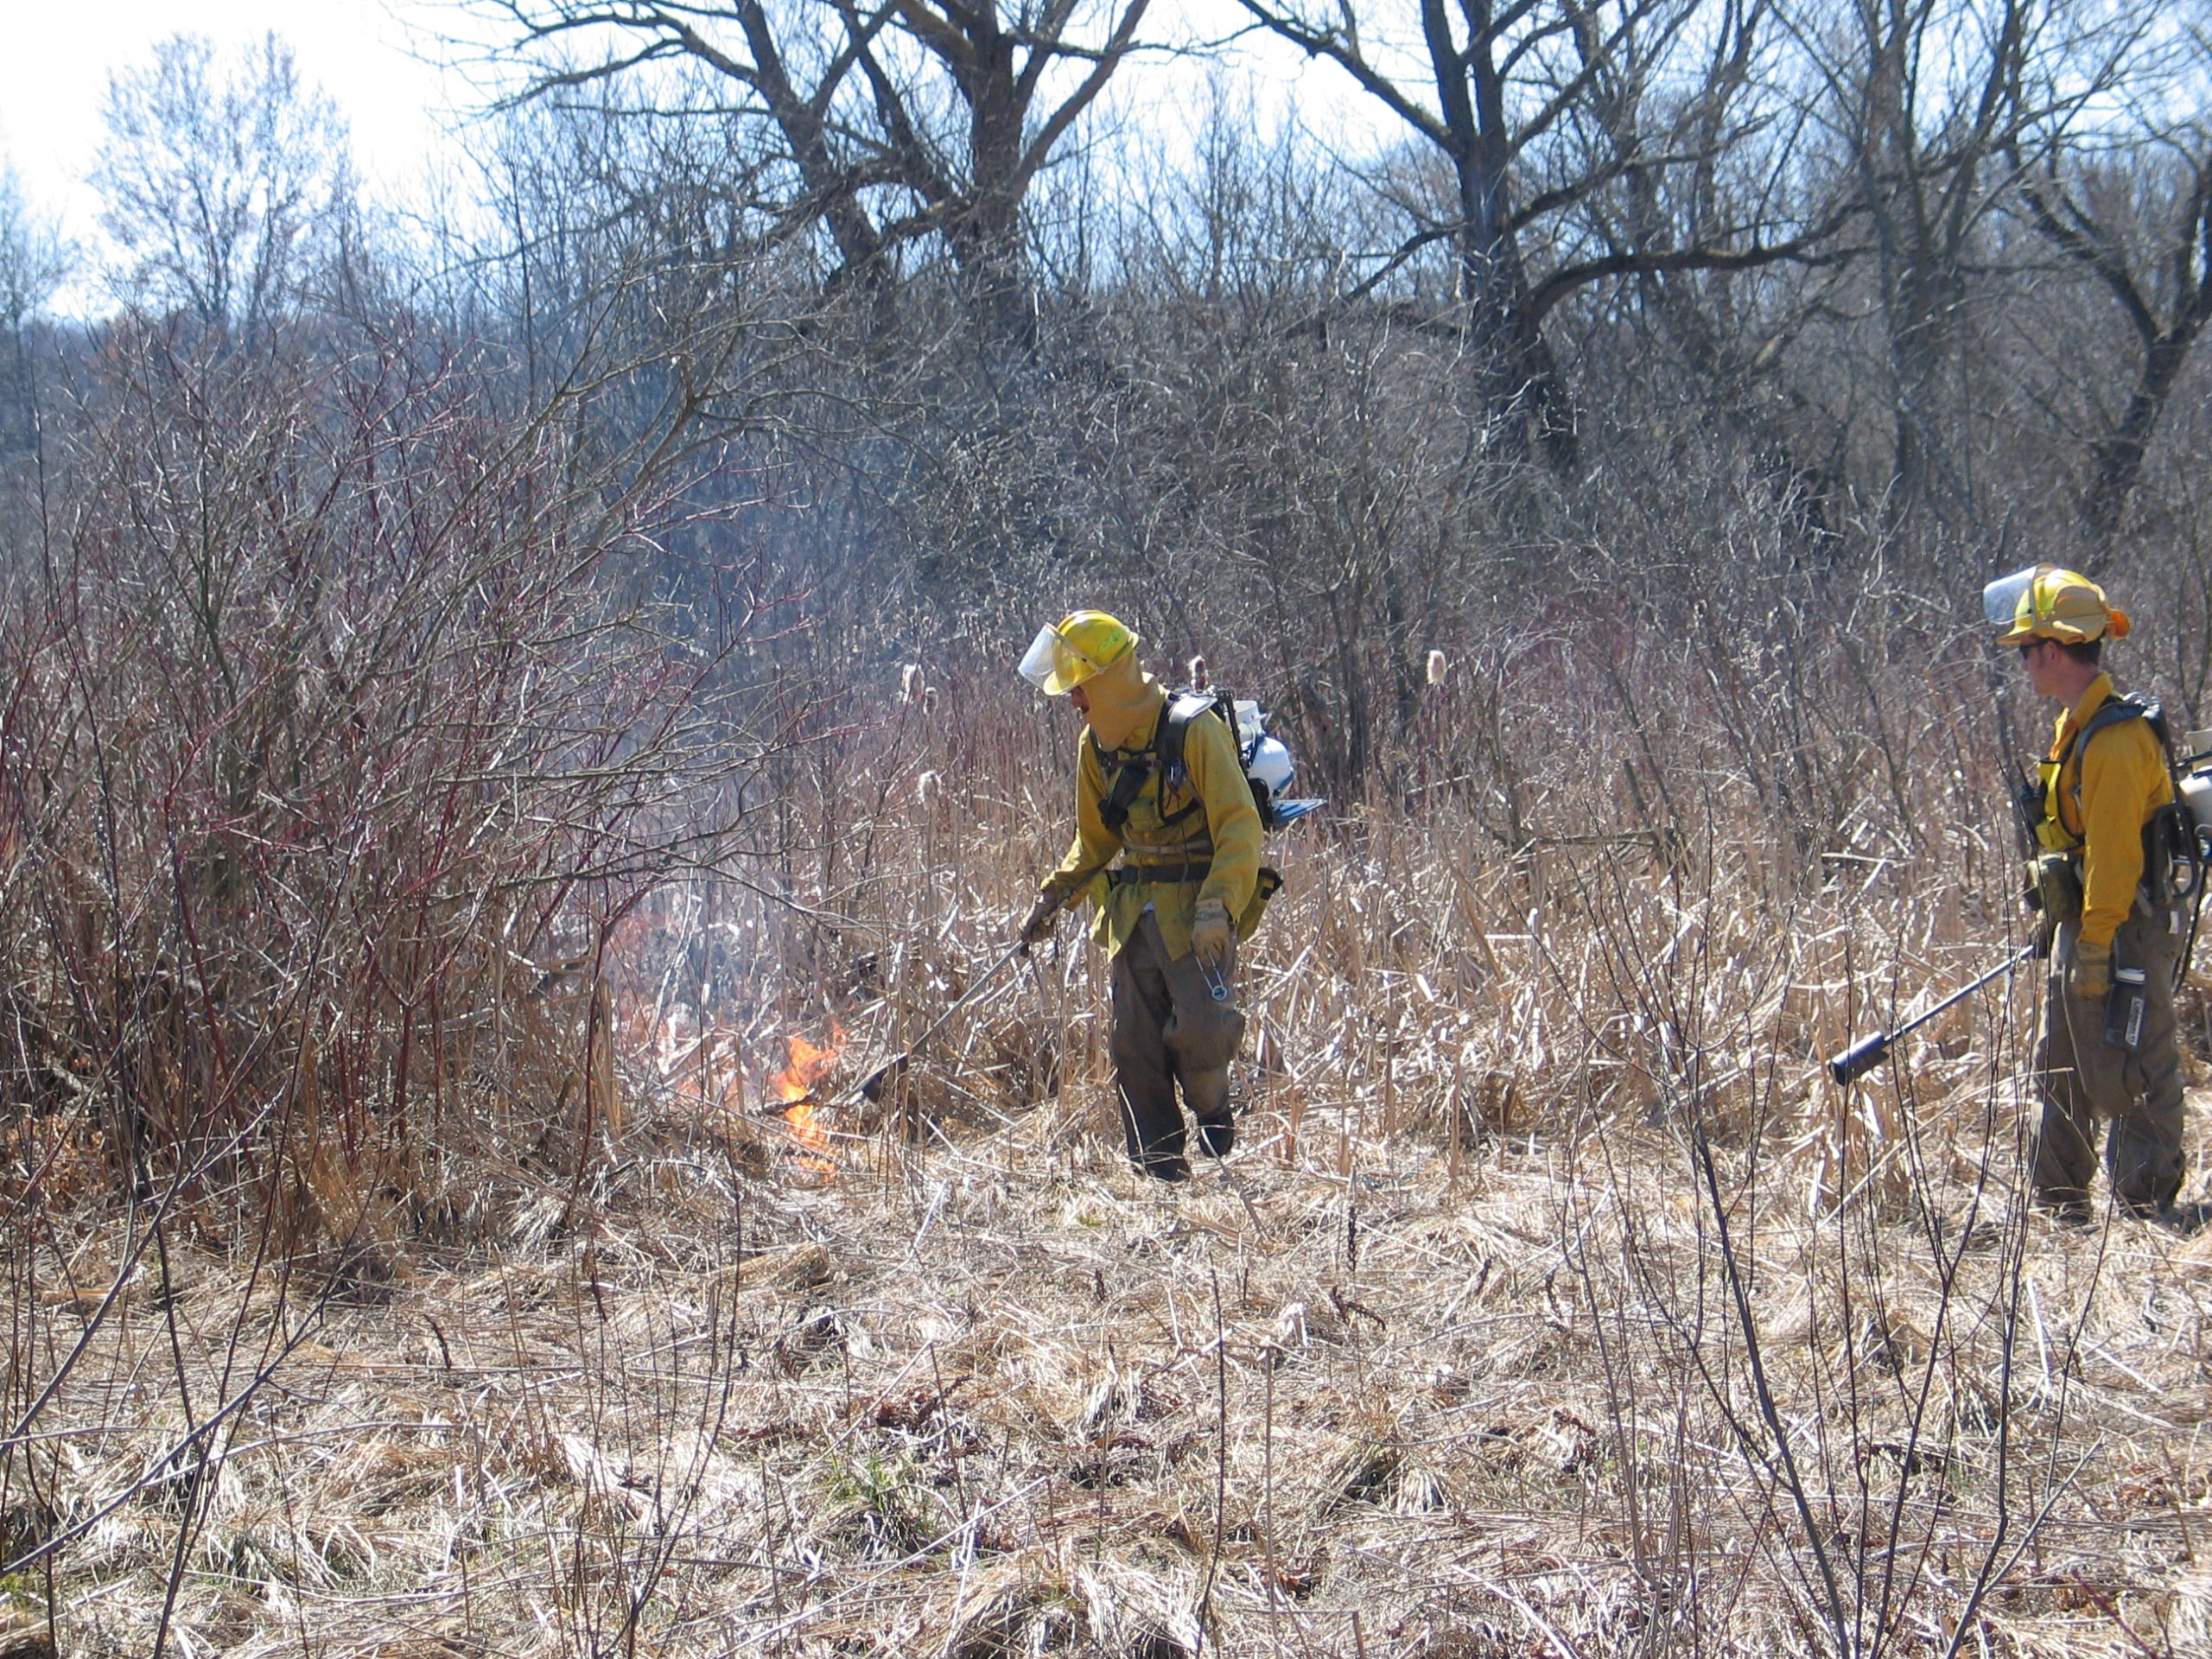 Wildlife management experts methodoically set fire to grasses